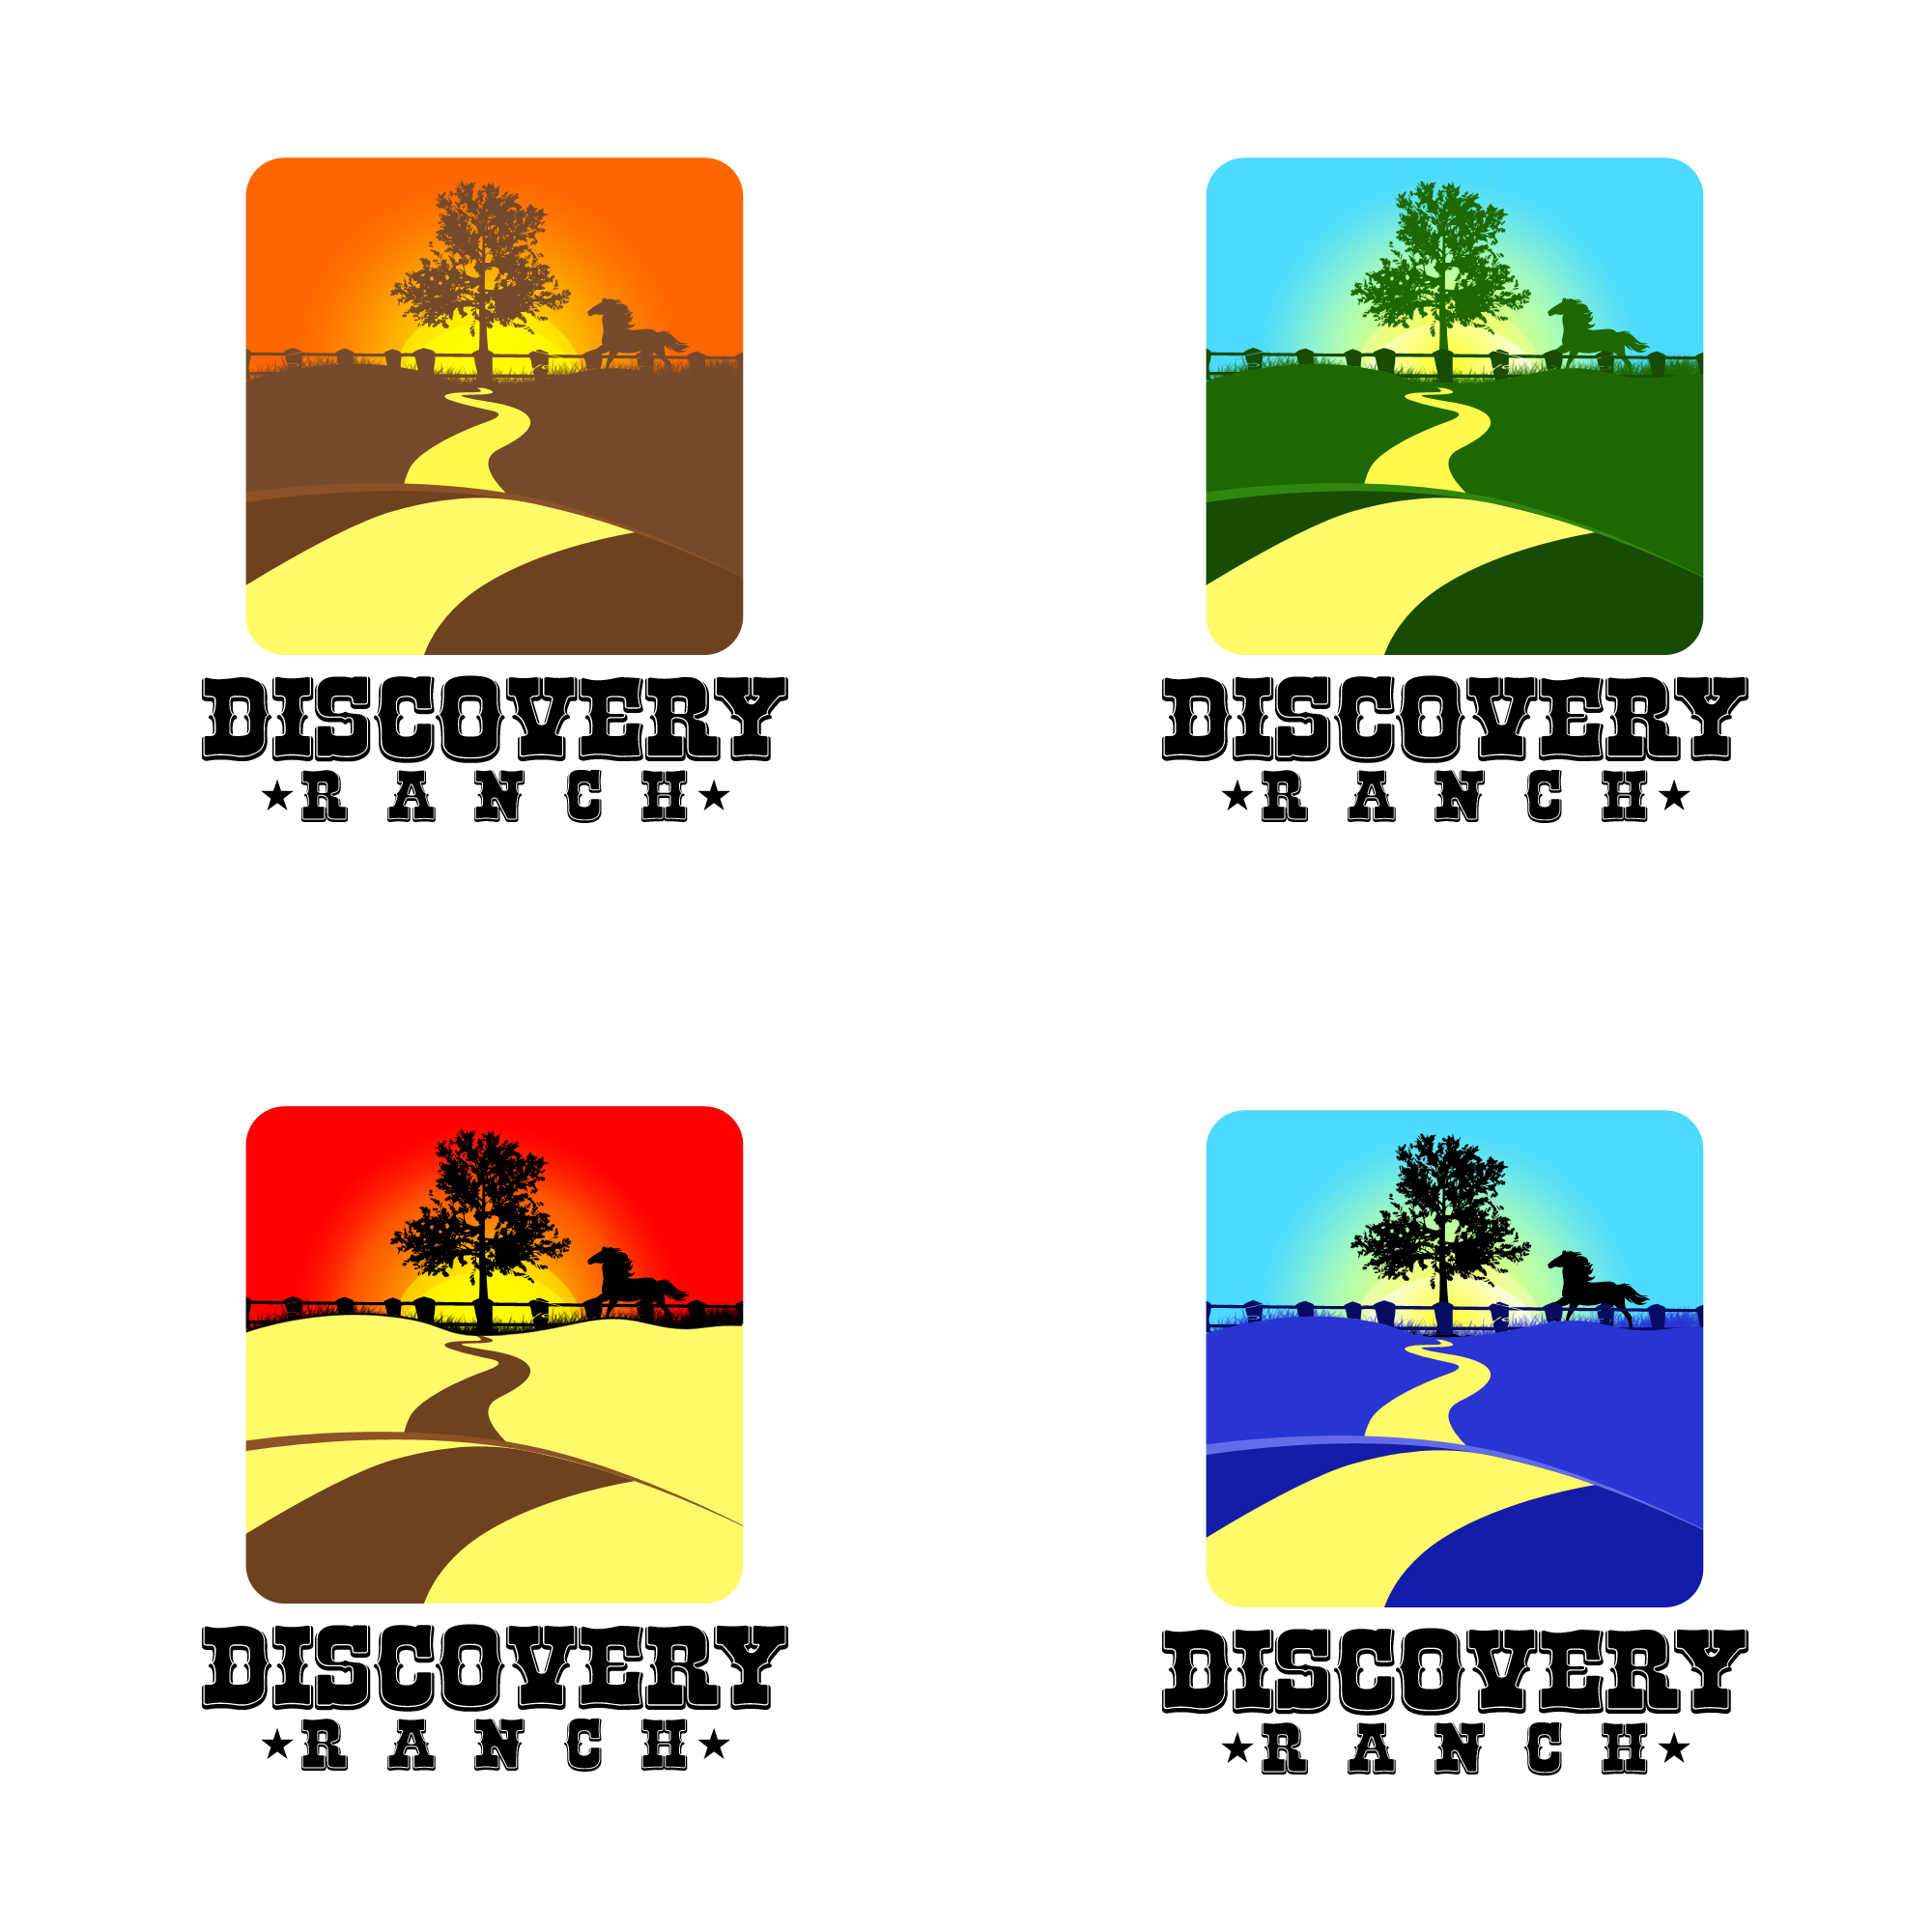 Logo Design by Kenneth Joel - Entry No. 64 in the Logo Design Contest Creative Logo Design for Discovery Ranch.